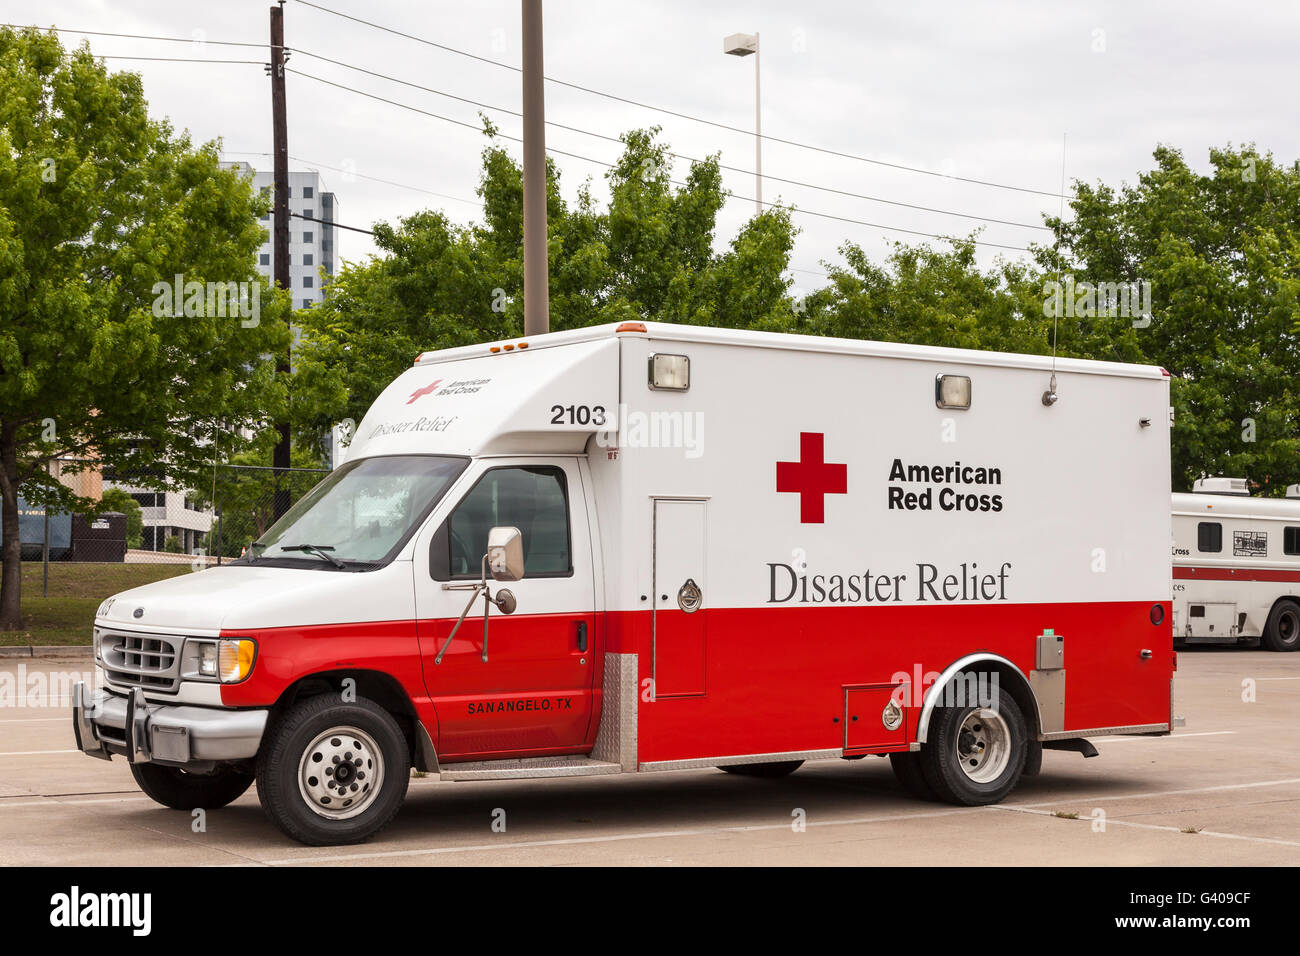 American Red Cross Disaster Relief Vehicle - Stock Image